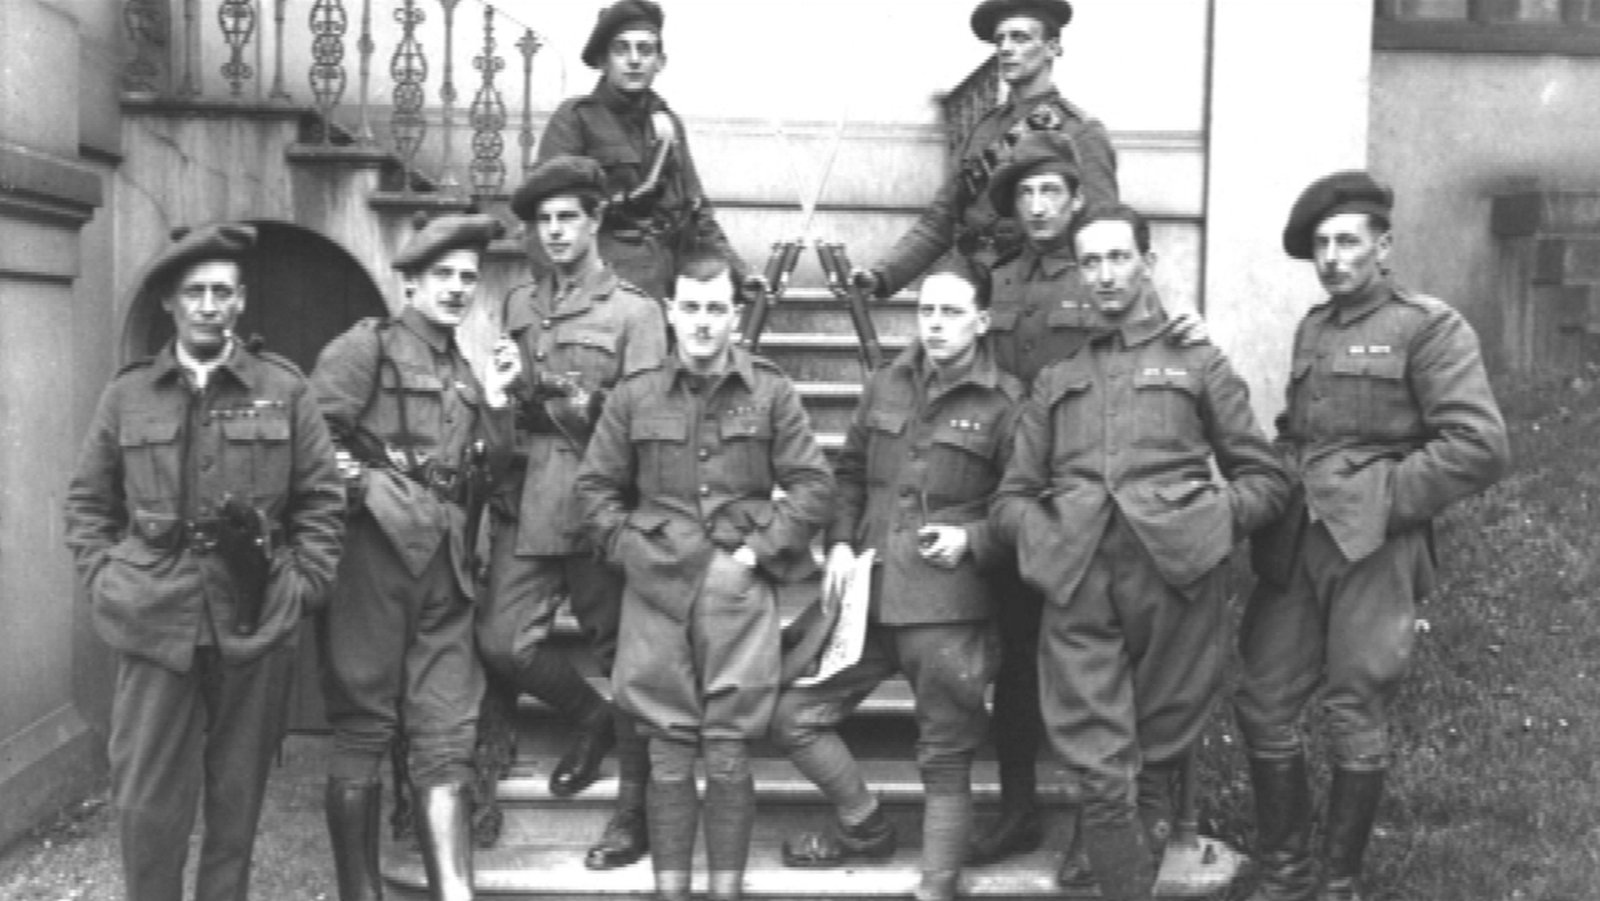 Who were the Black and Tans and the Auxiliaries?